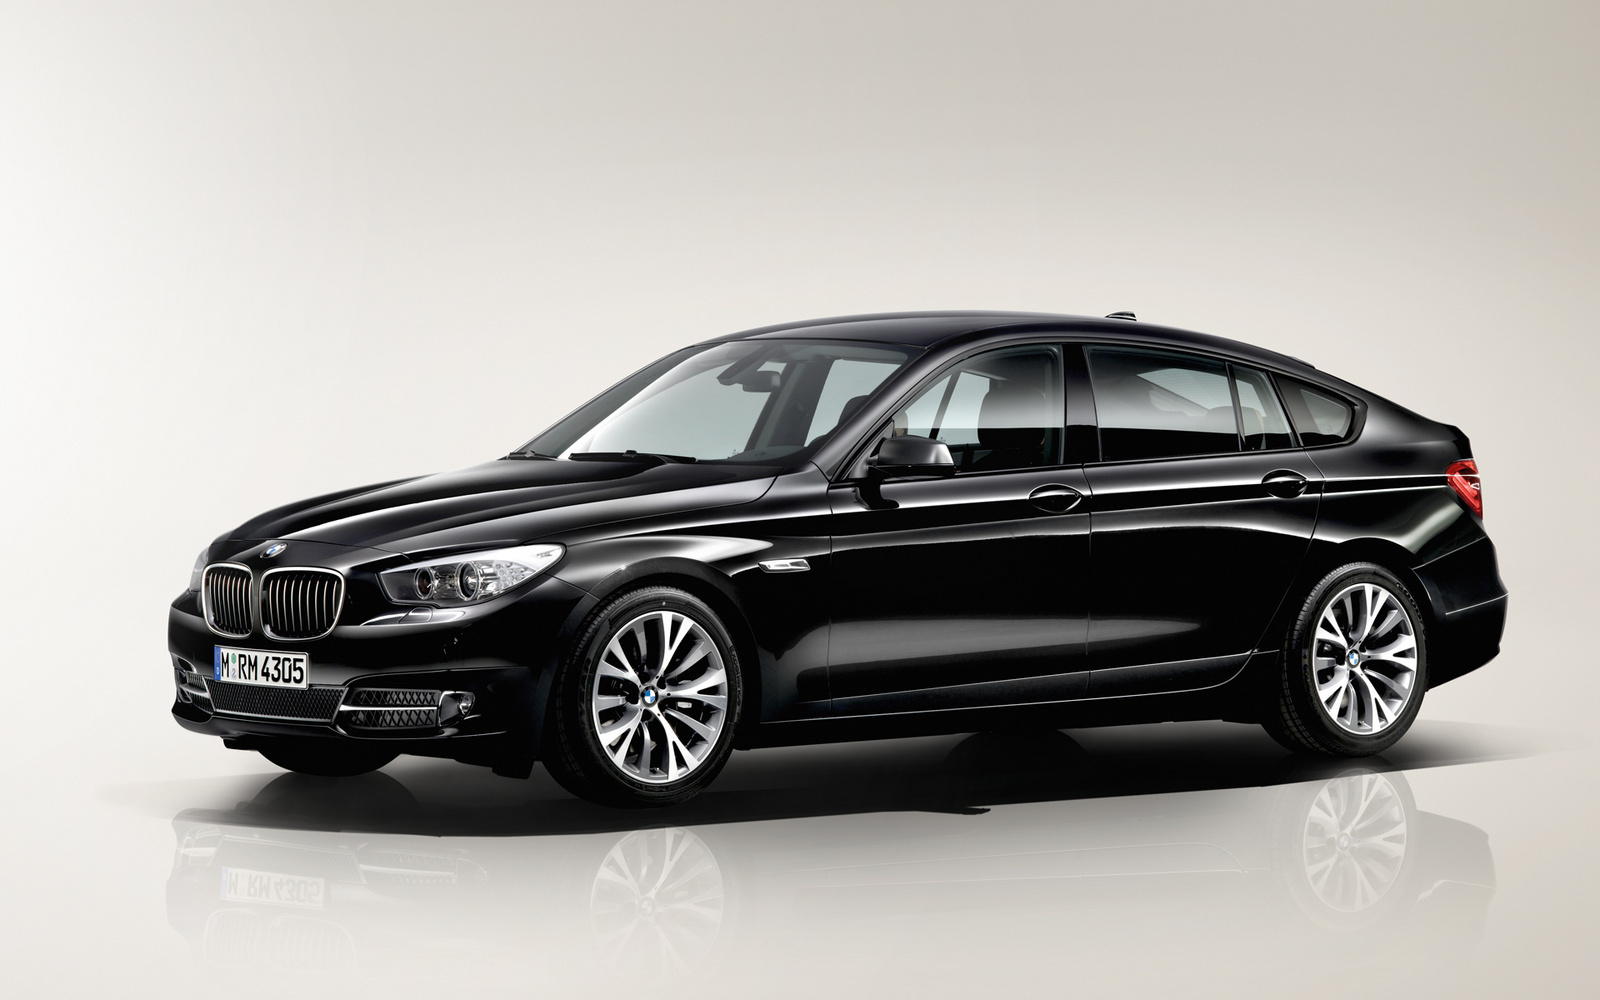 2013 Bmw 5 Series Gran Turismo Review Cargurus